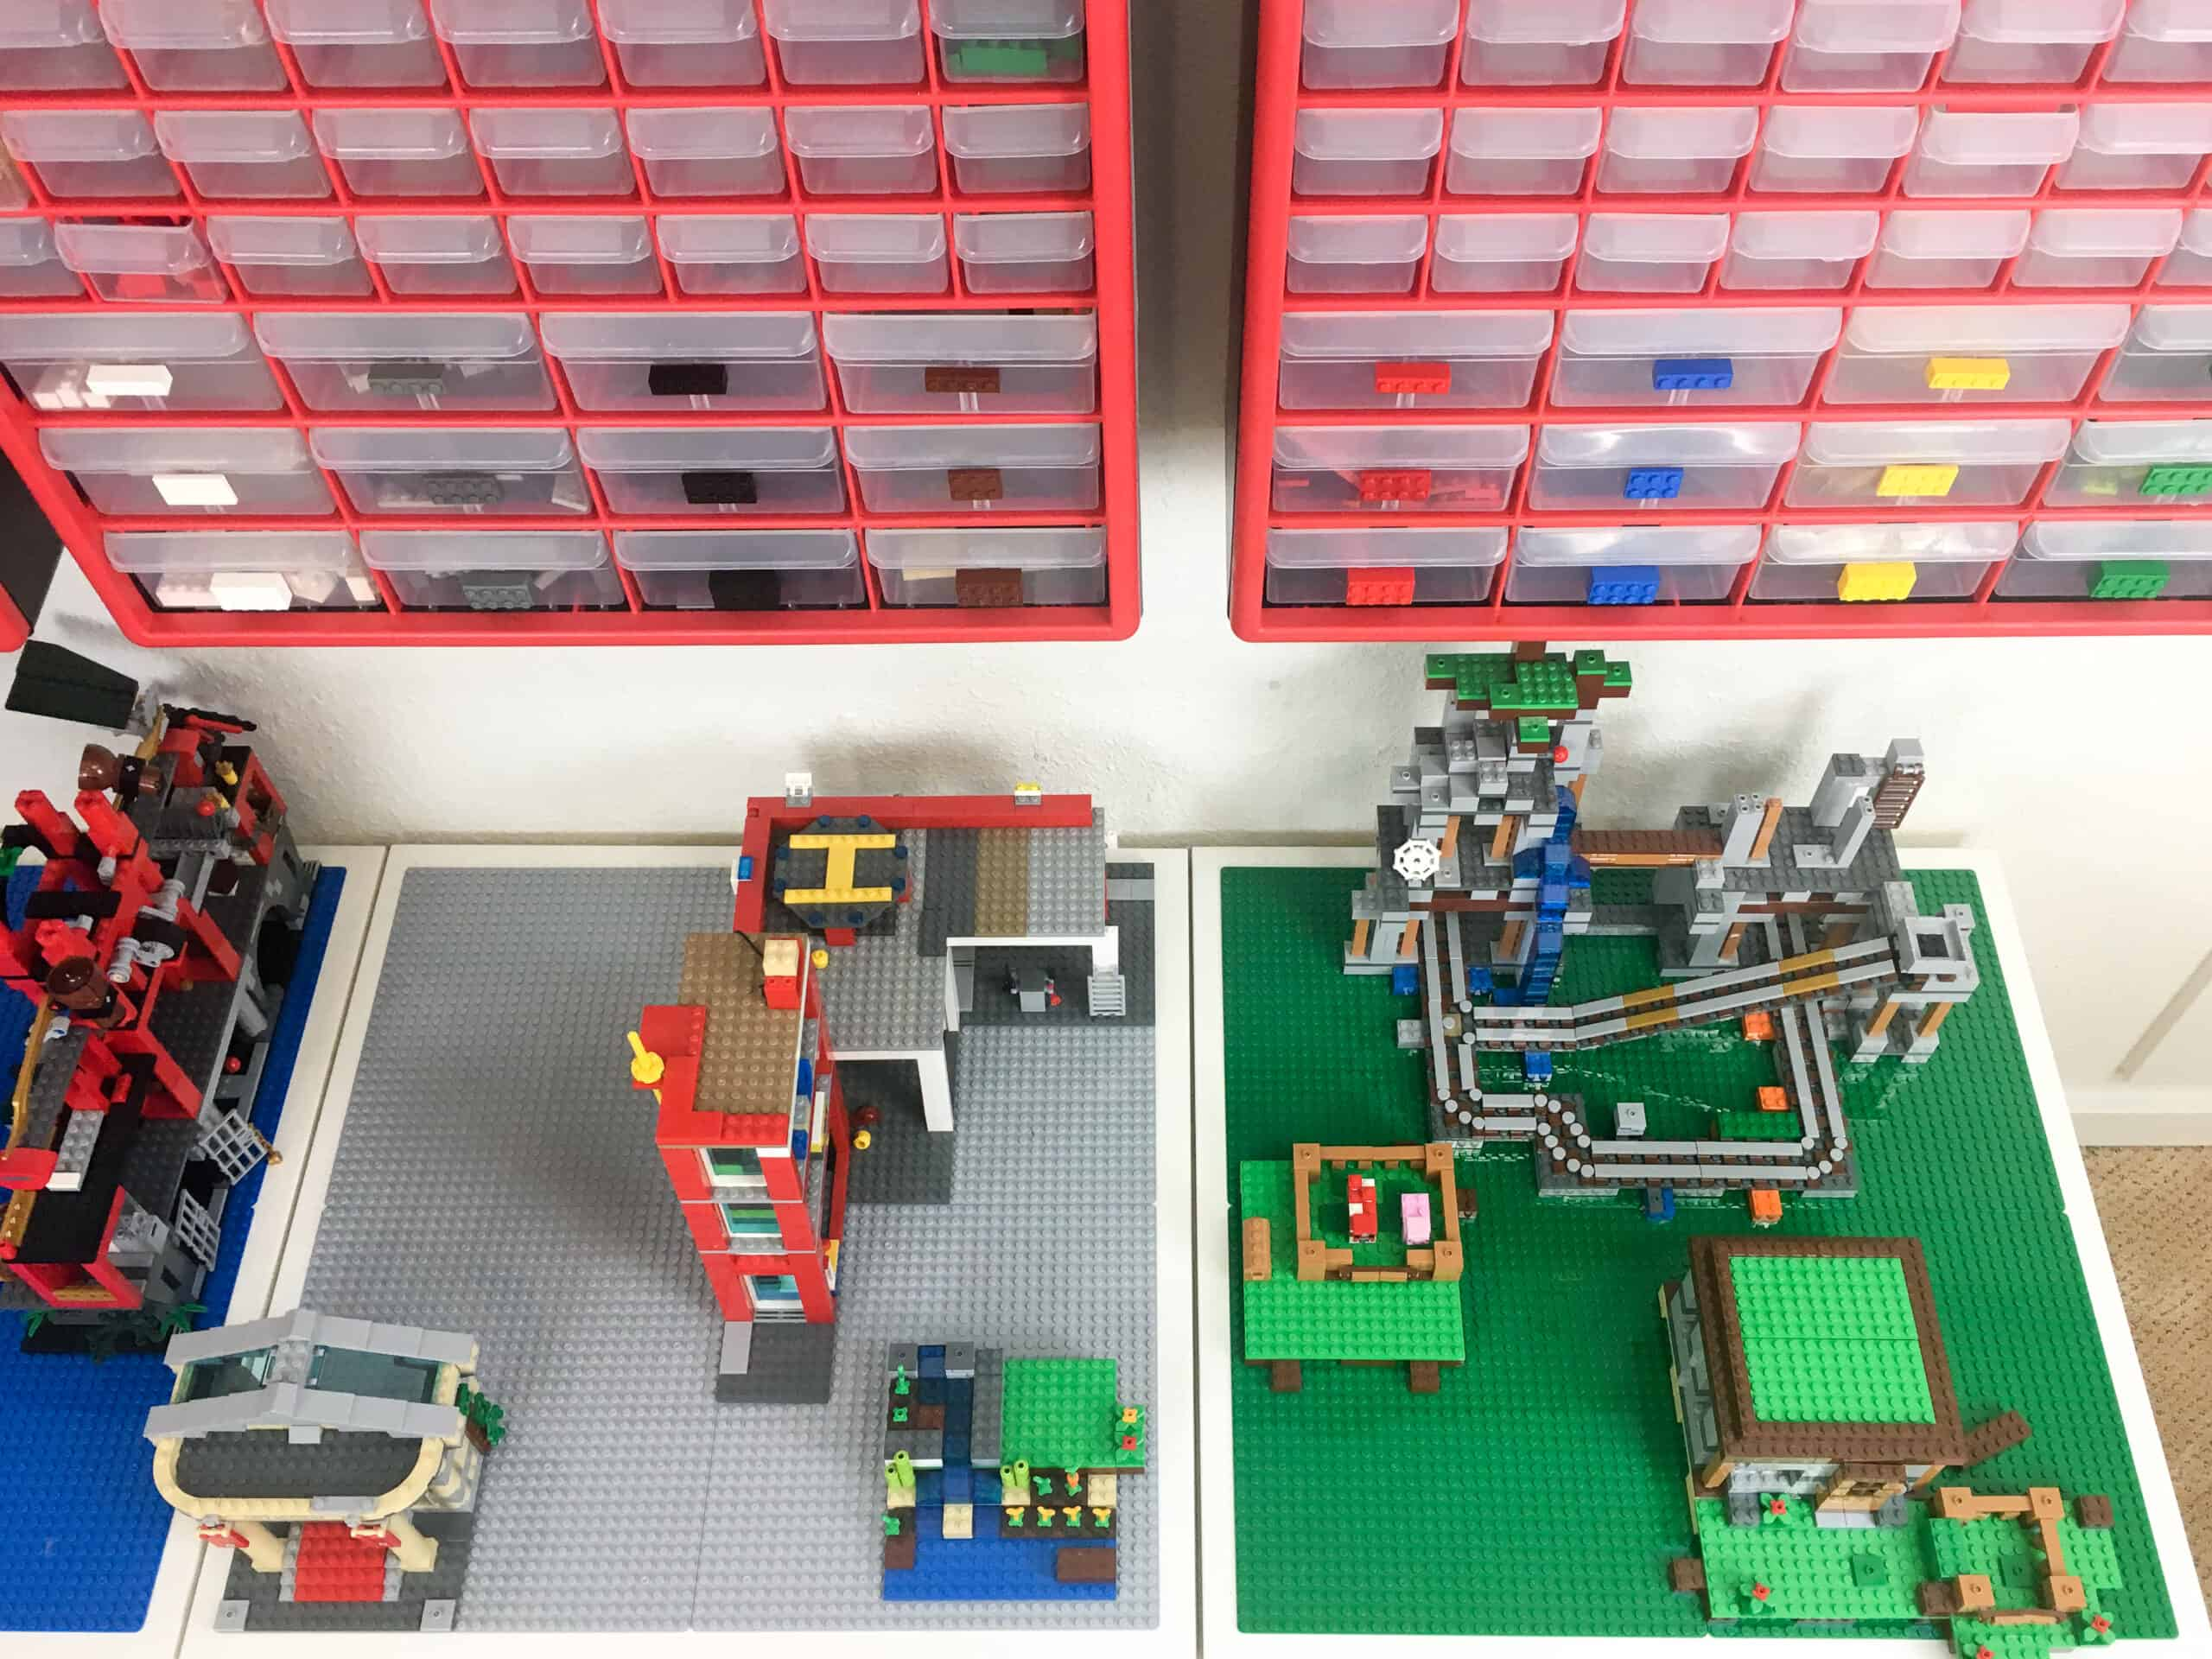 Lego city and Minecraft sets built on DIY Lego table